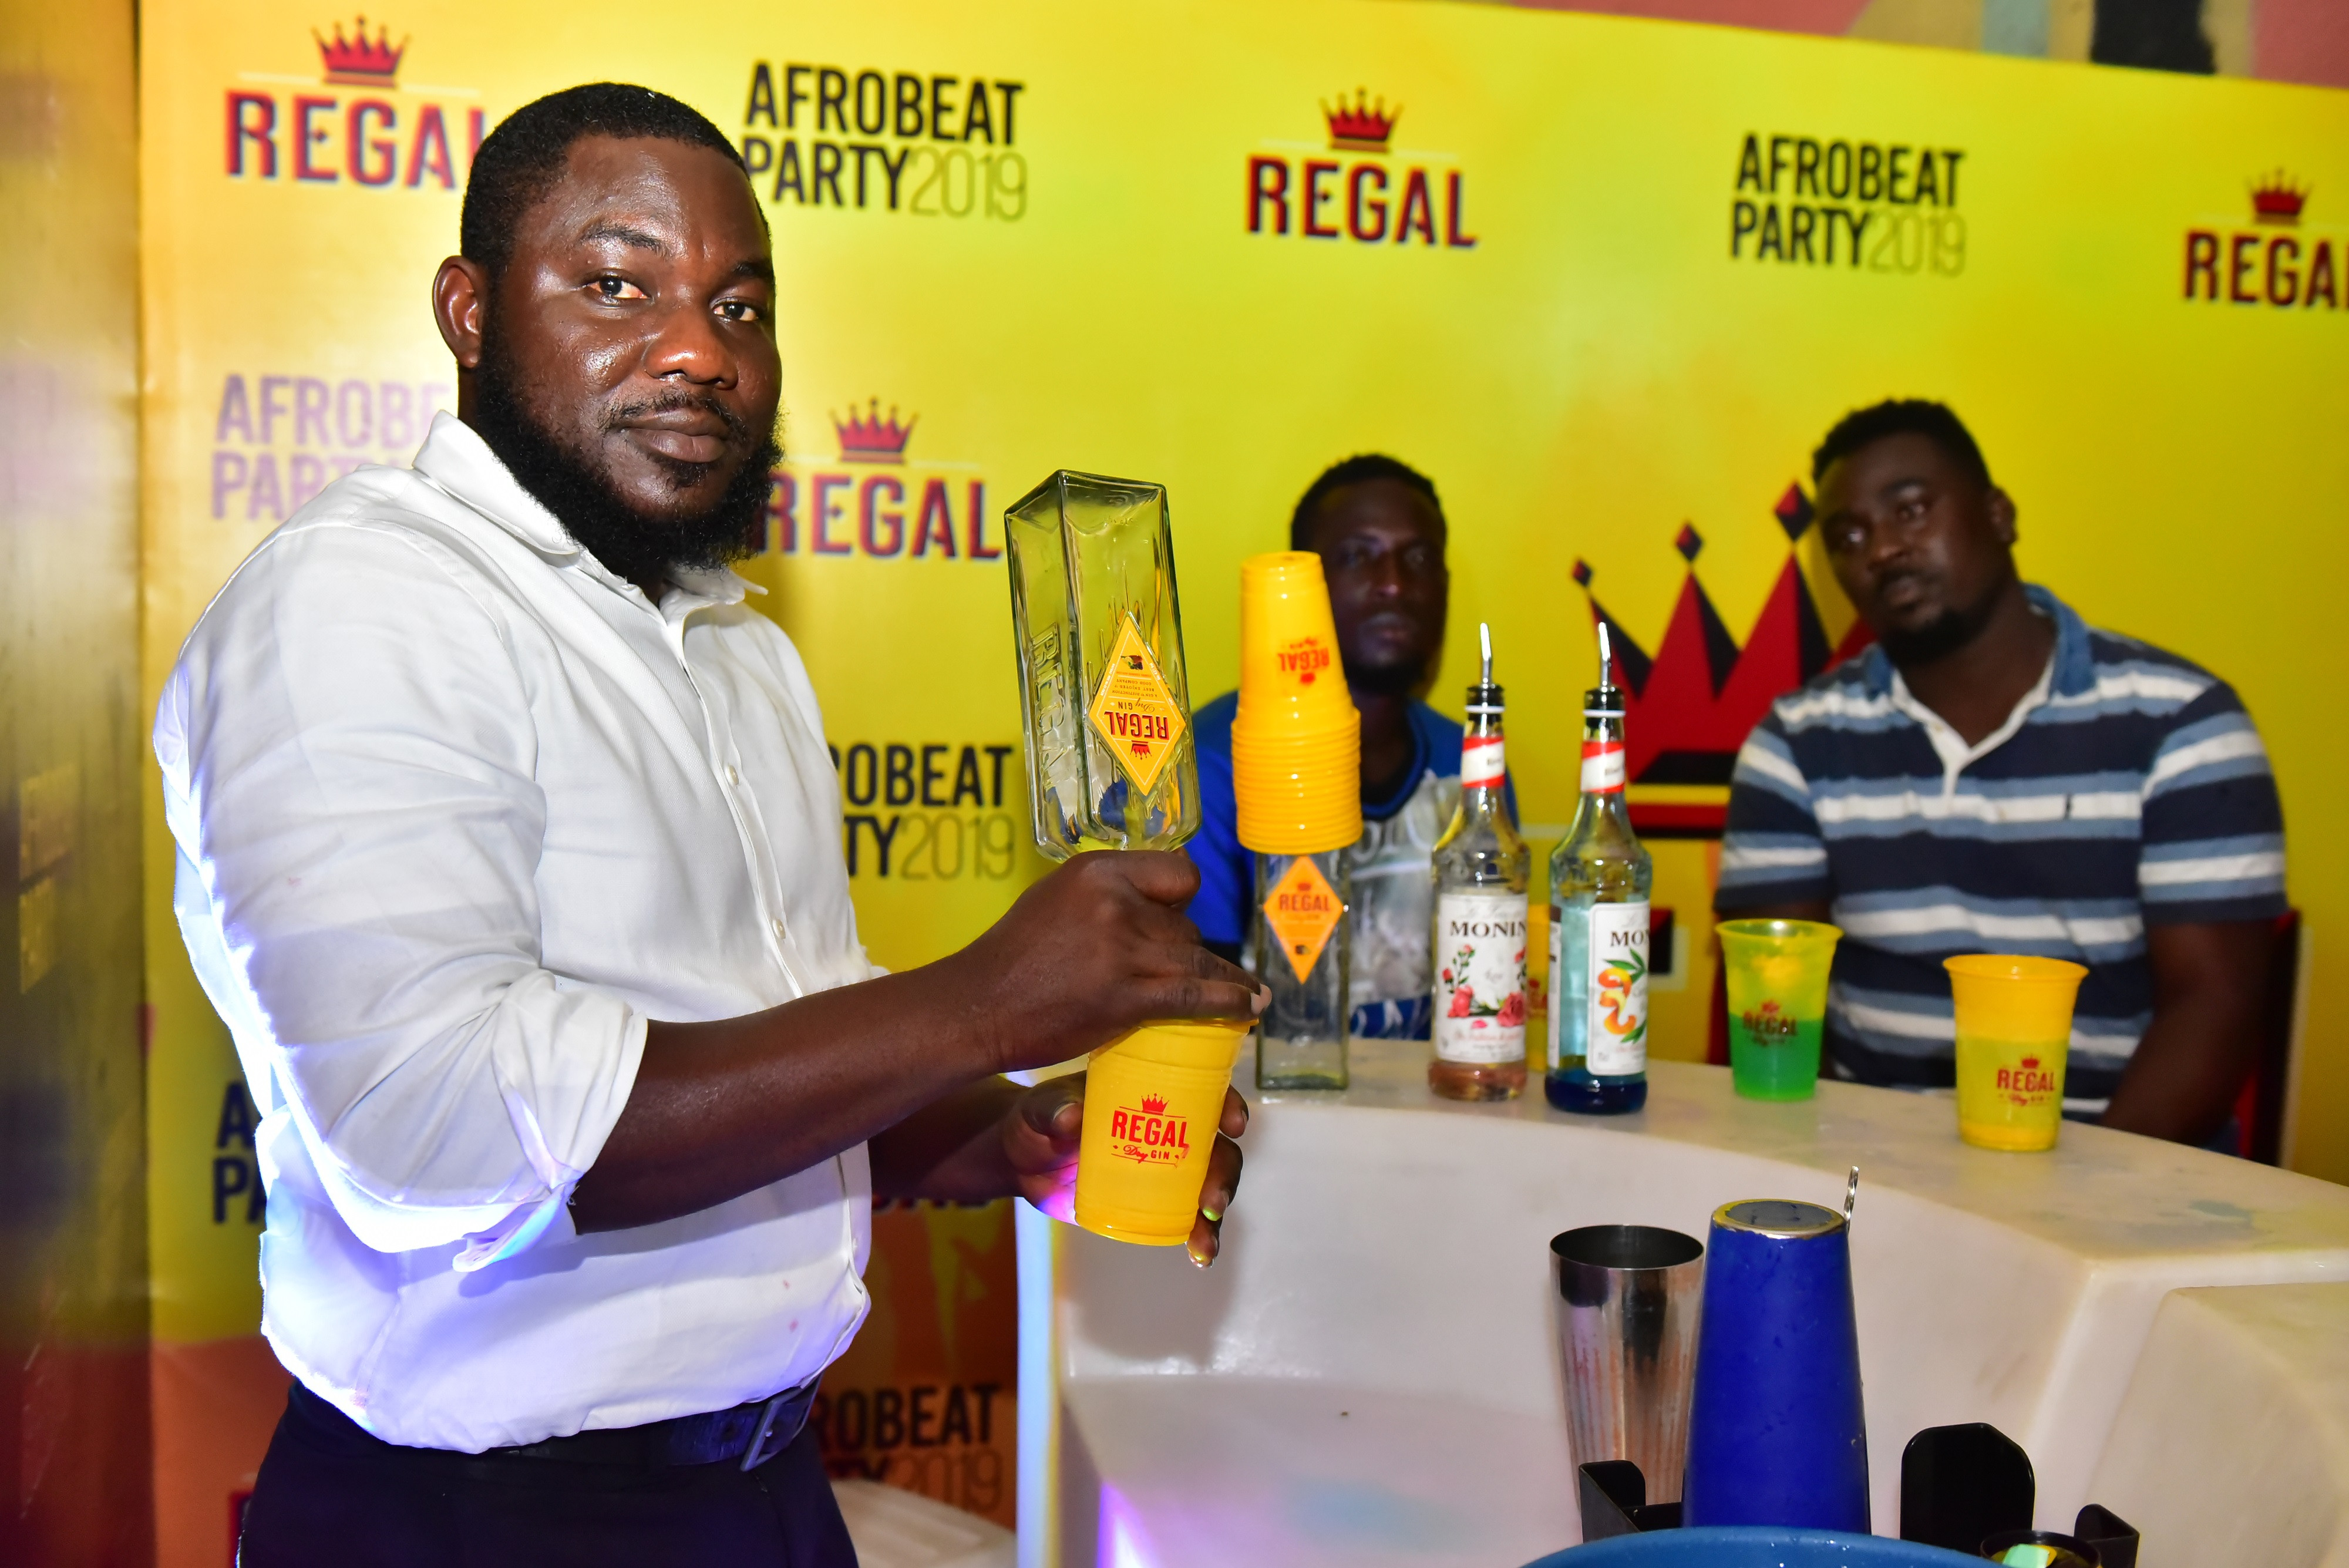 #RegalAfroBeatParty2019 ? A two-day thriller in celebration of Fela!